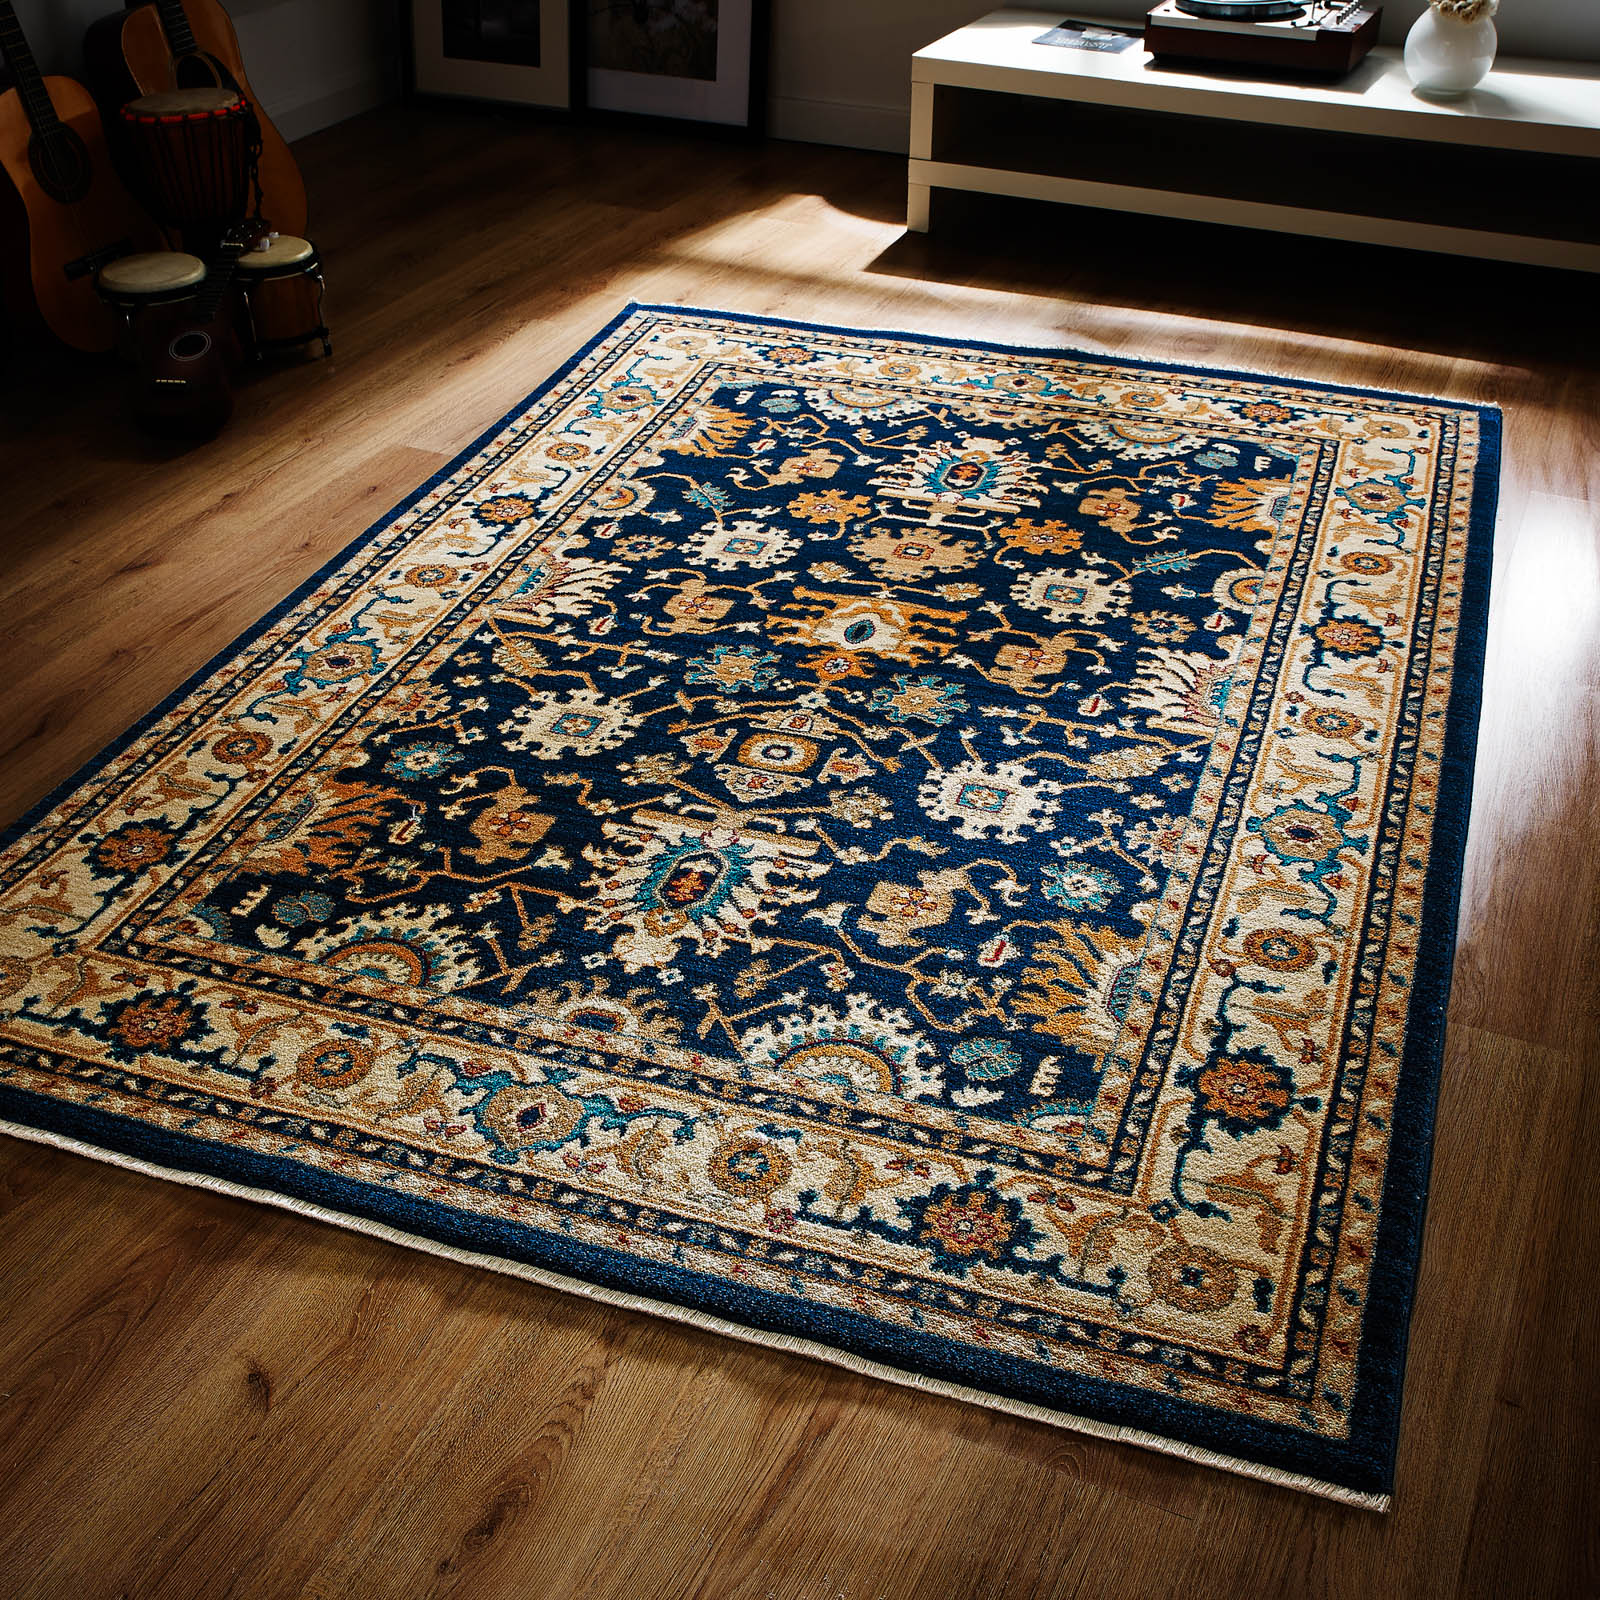 Persia Tabriz Rugs in Navy and Cream